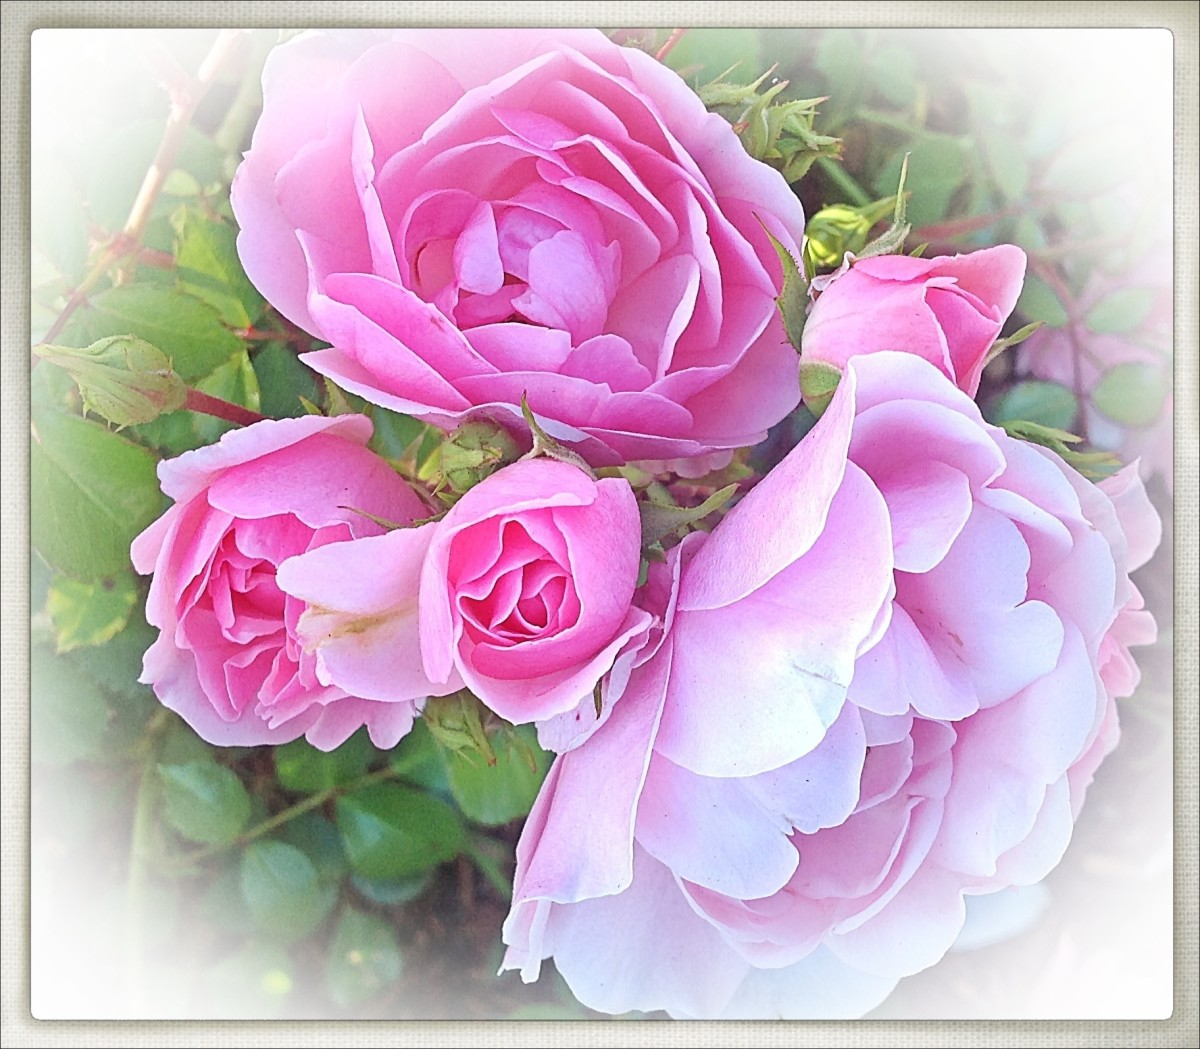 Roses: Flower Facts, Symbolic Meanings, and a Poem of Love